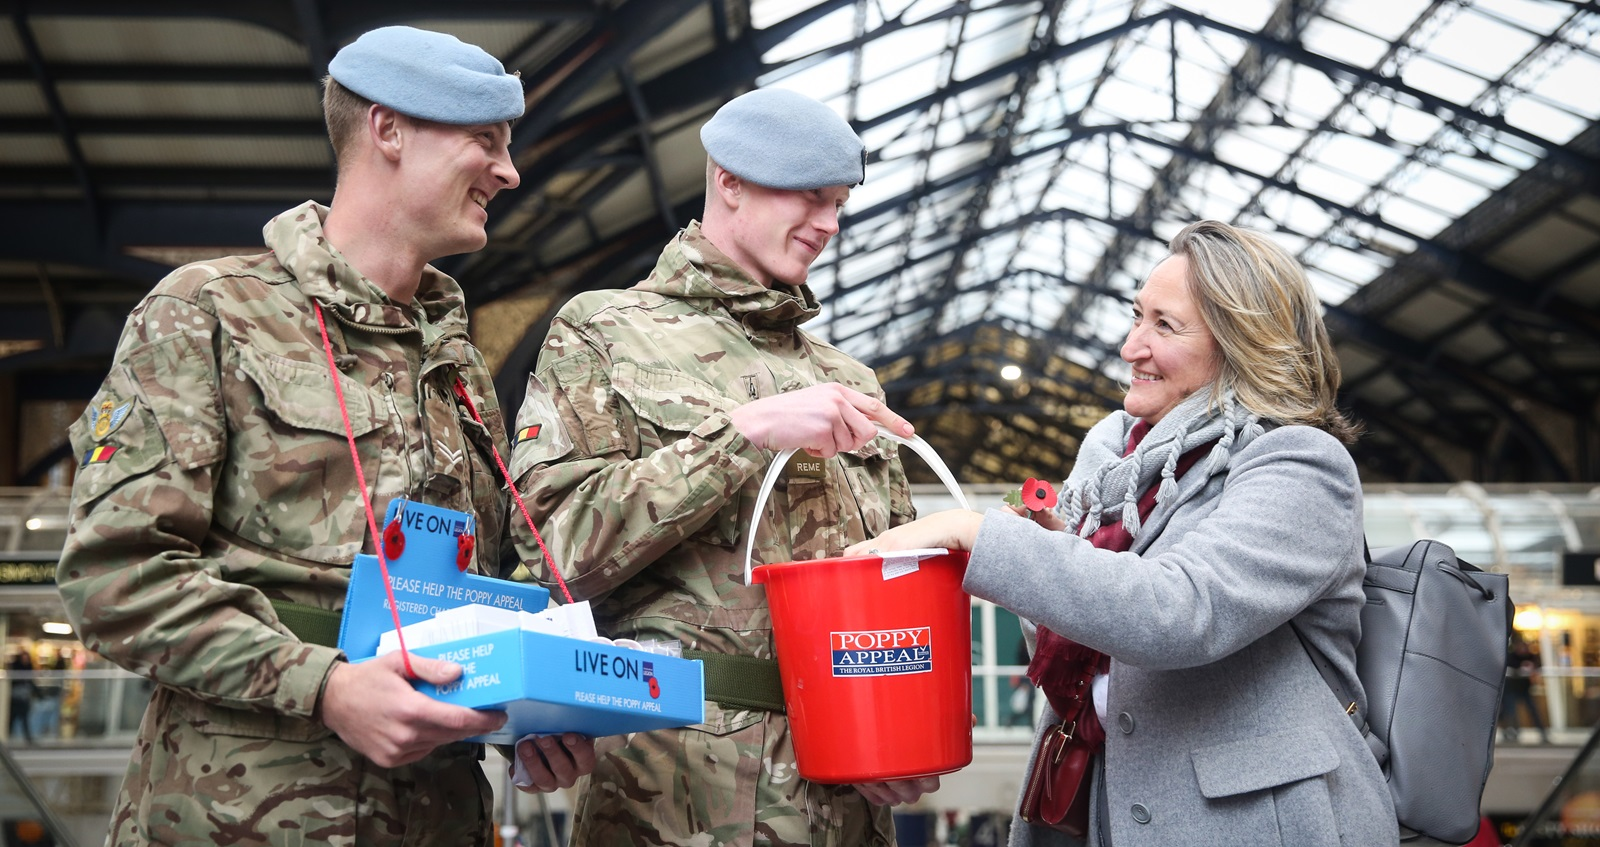 A member of the public giving a donation to the Poppy Appeal